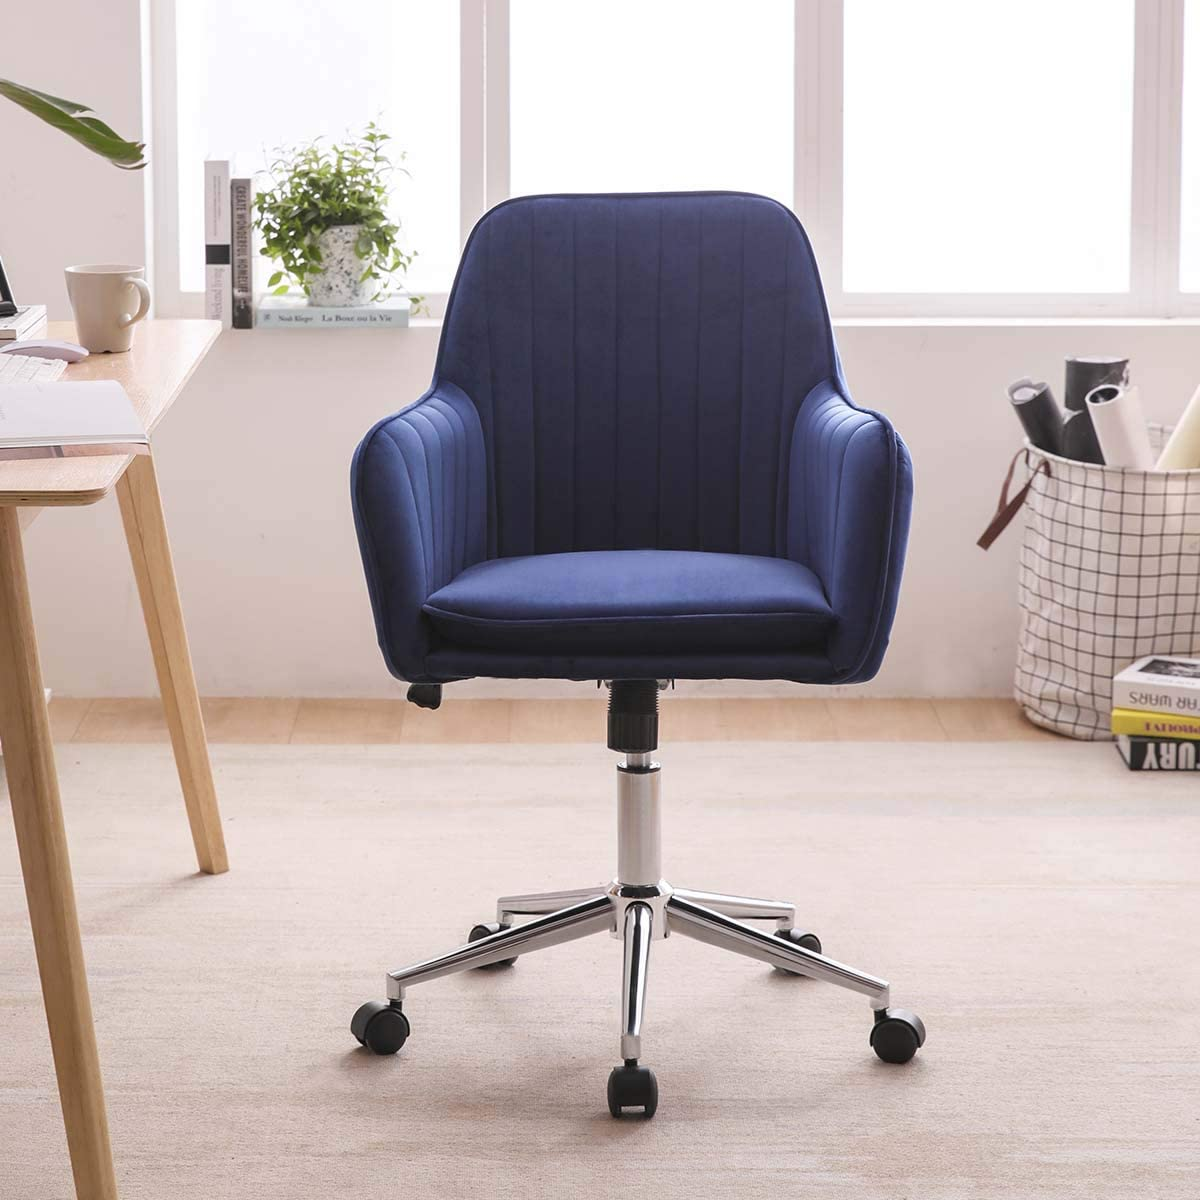 Hironpal Blue Crushed Velvet Fabric Home Office Chair Swivel Height Adjustable Ergonomic Computer Desk Chairs Graceful Reception Chairs Amazon Co Uk Kitchen Home